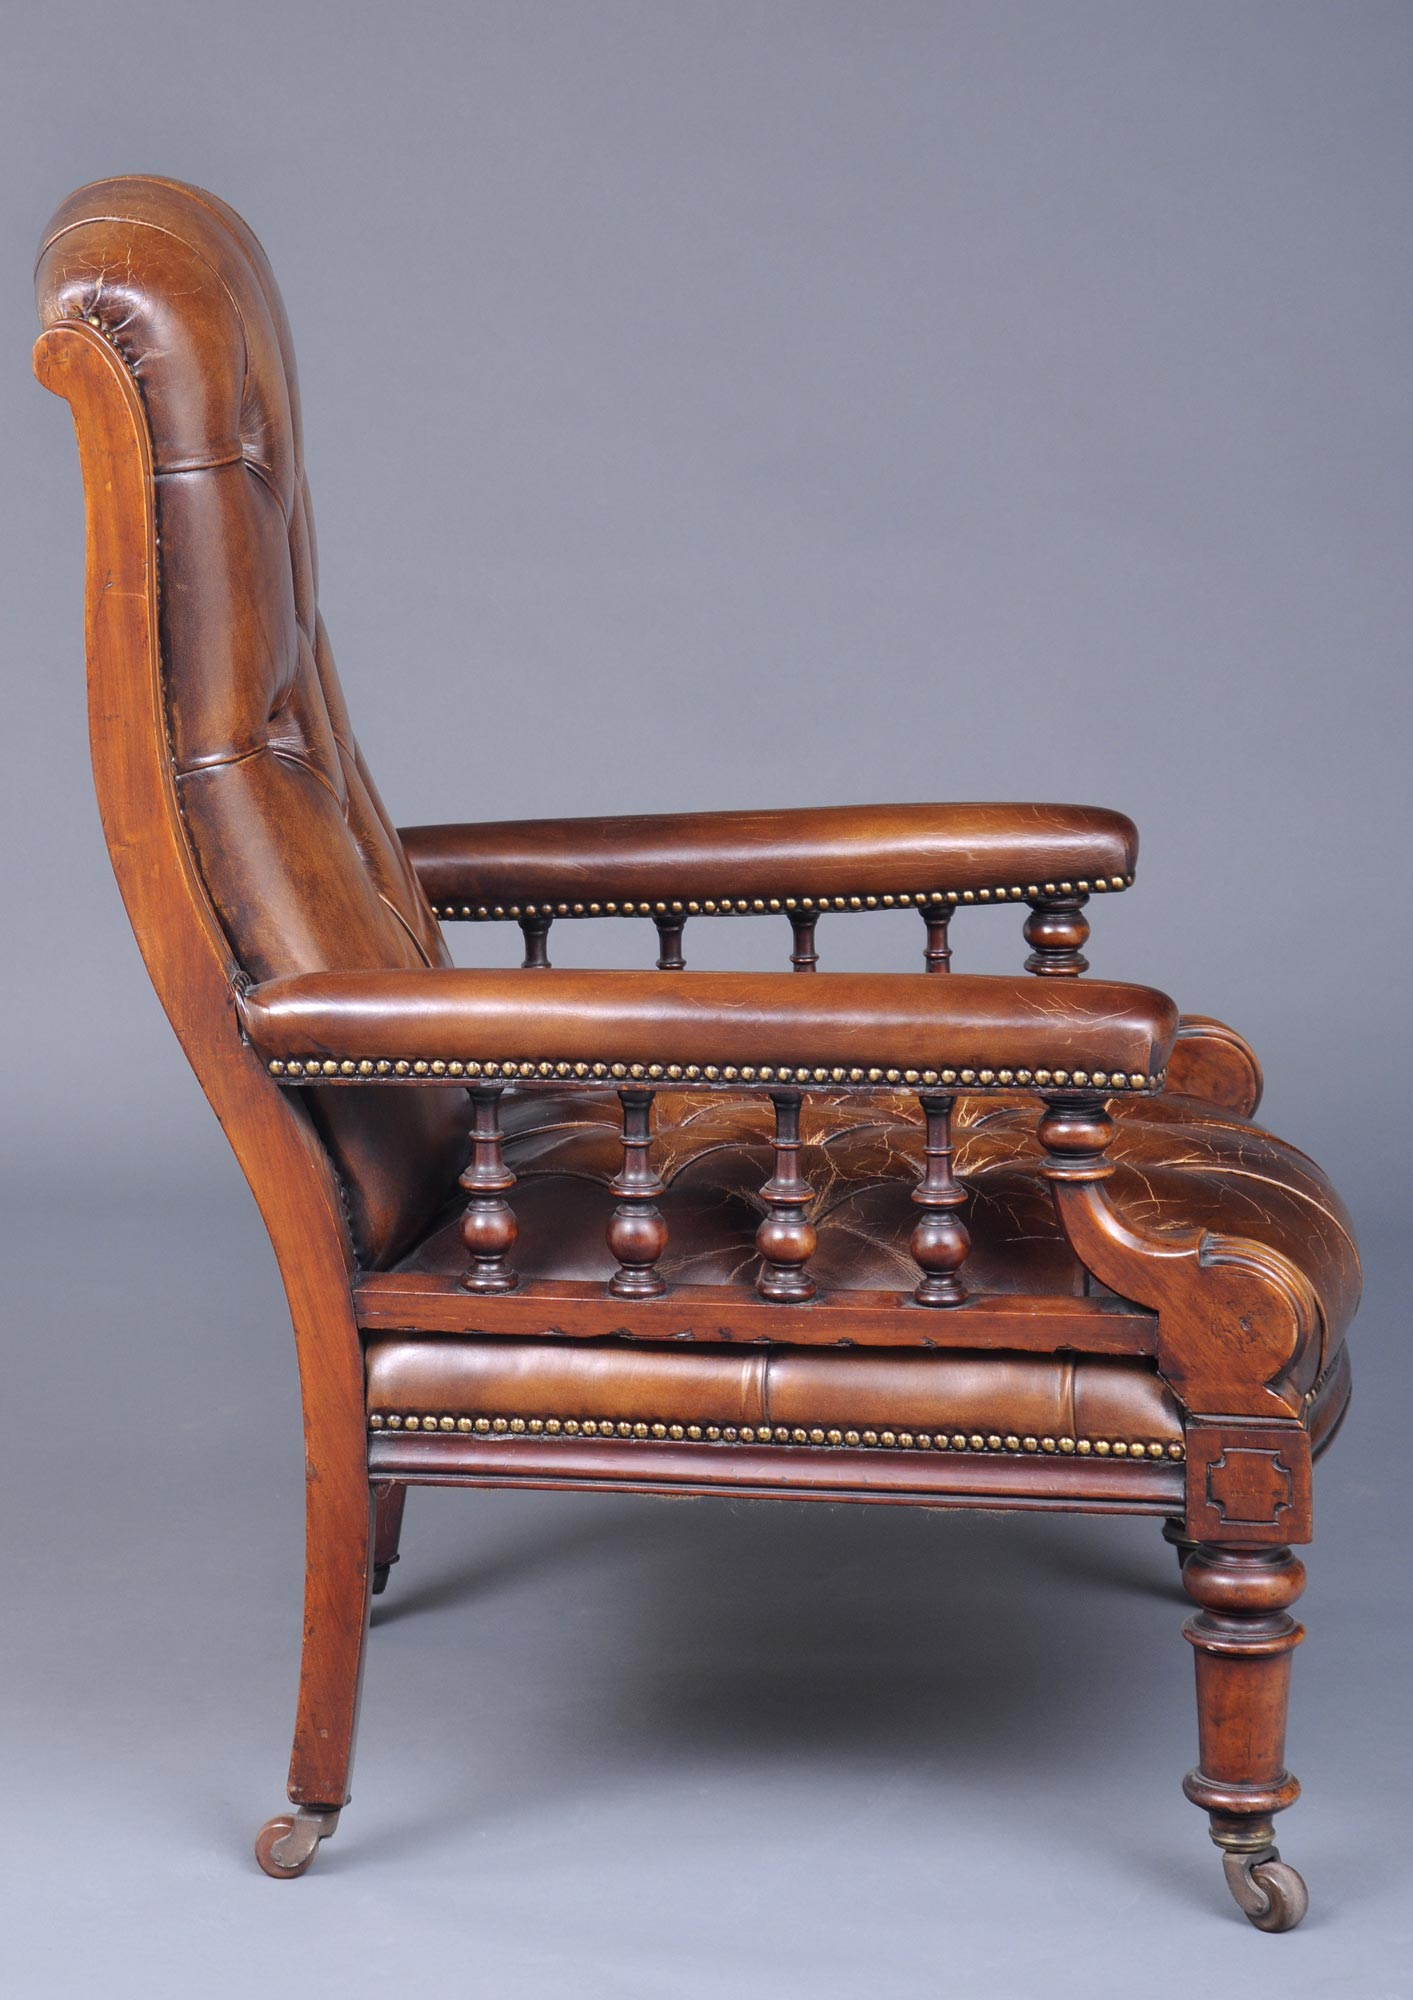 ... English Antique Victorian Mahogany and Leather Library Armchair, ... - Antique Library Chairs Antique English Mahogany Library Armchair